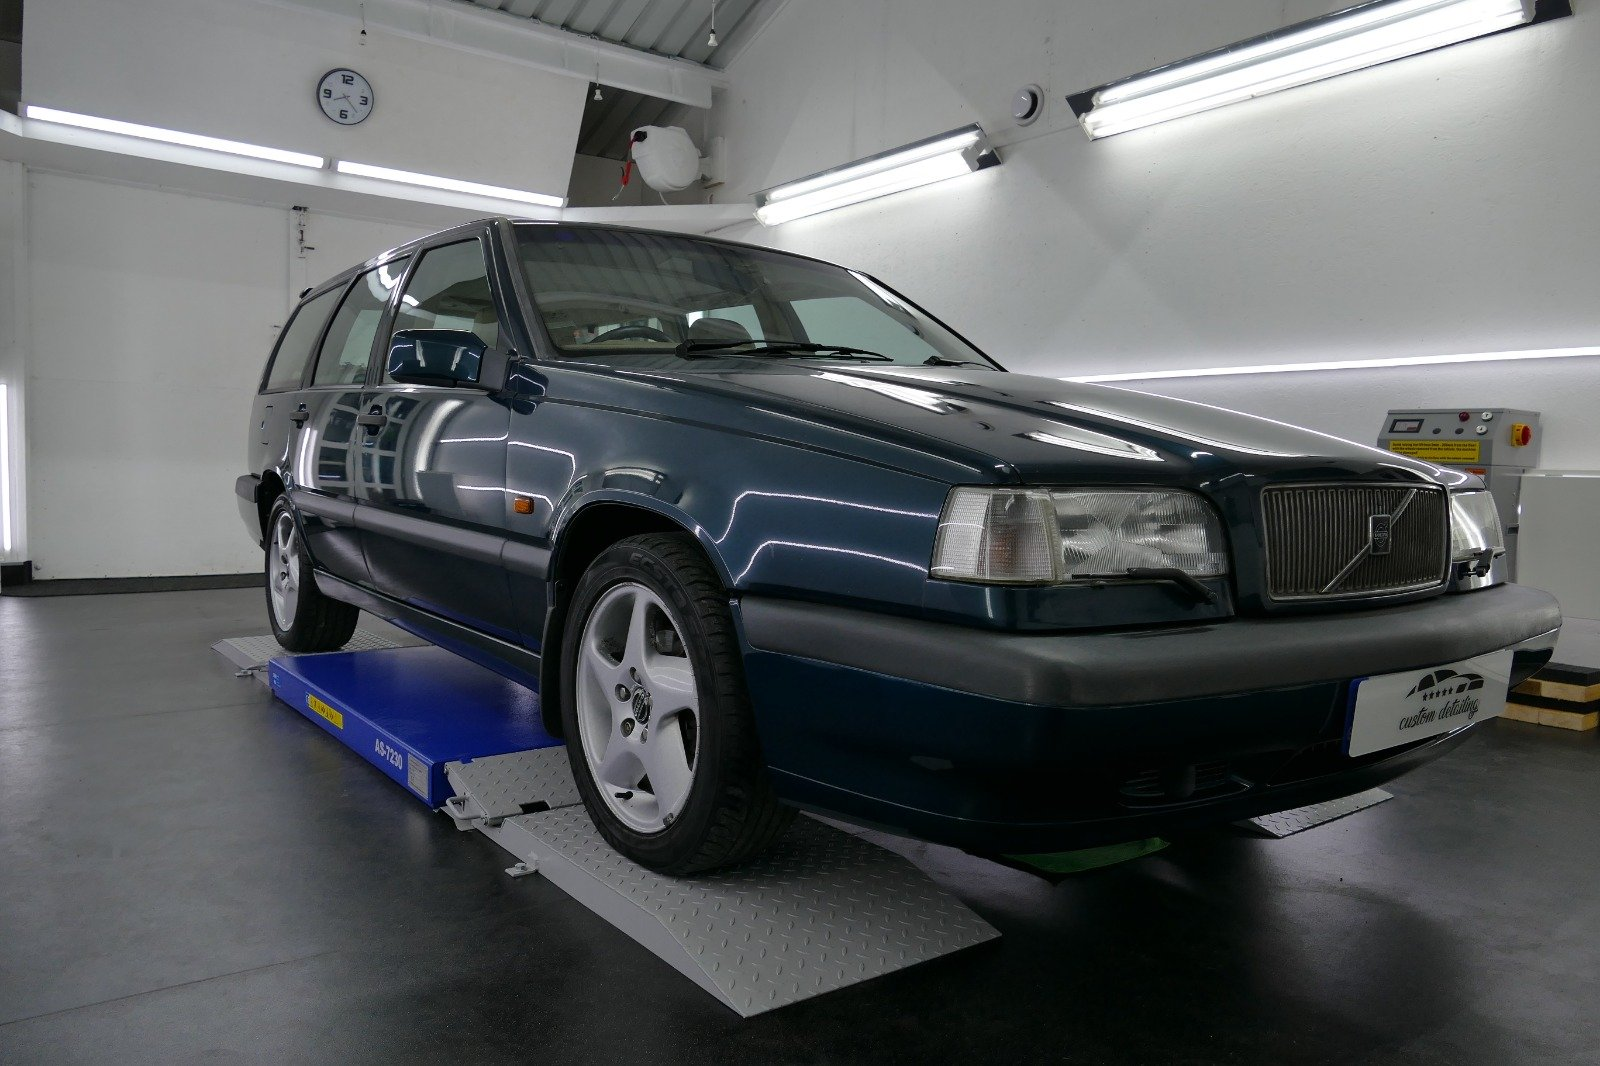 1996 Volvo 850 T5 CD Auto For Sale (picture 1 of 6)